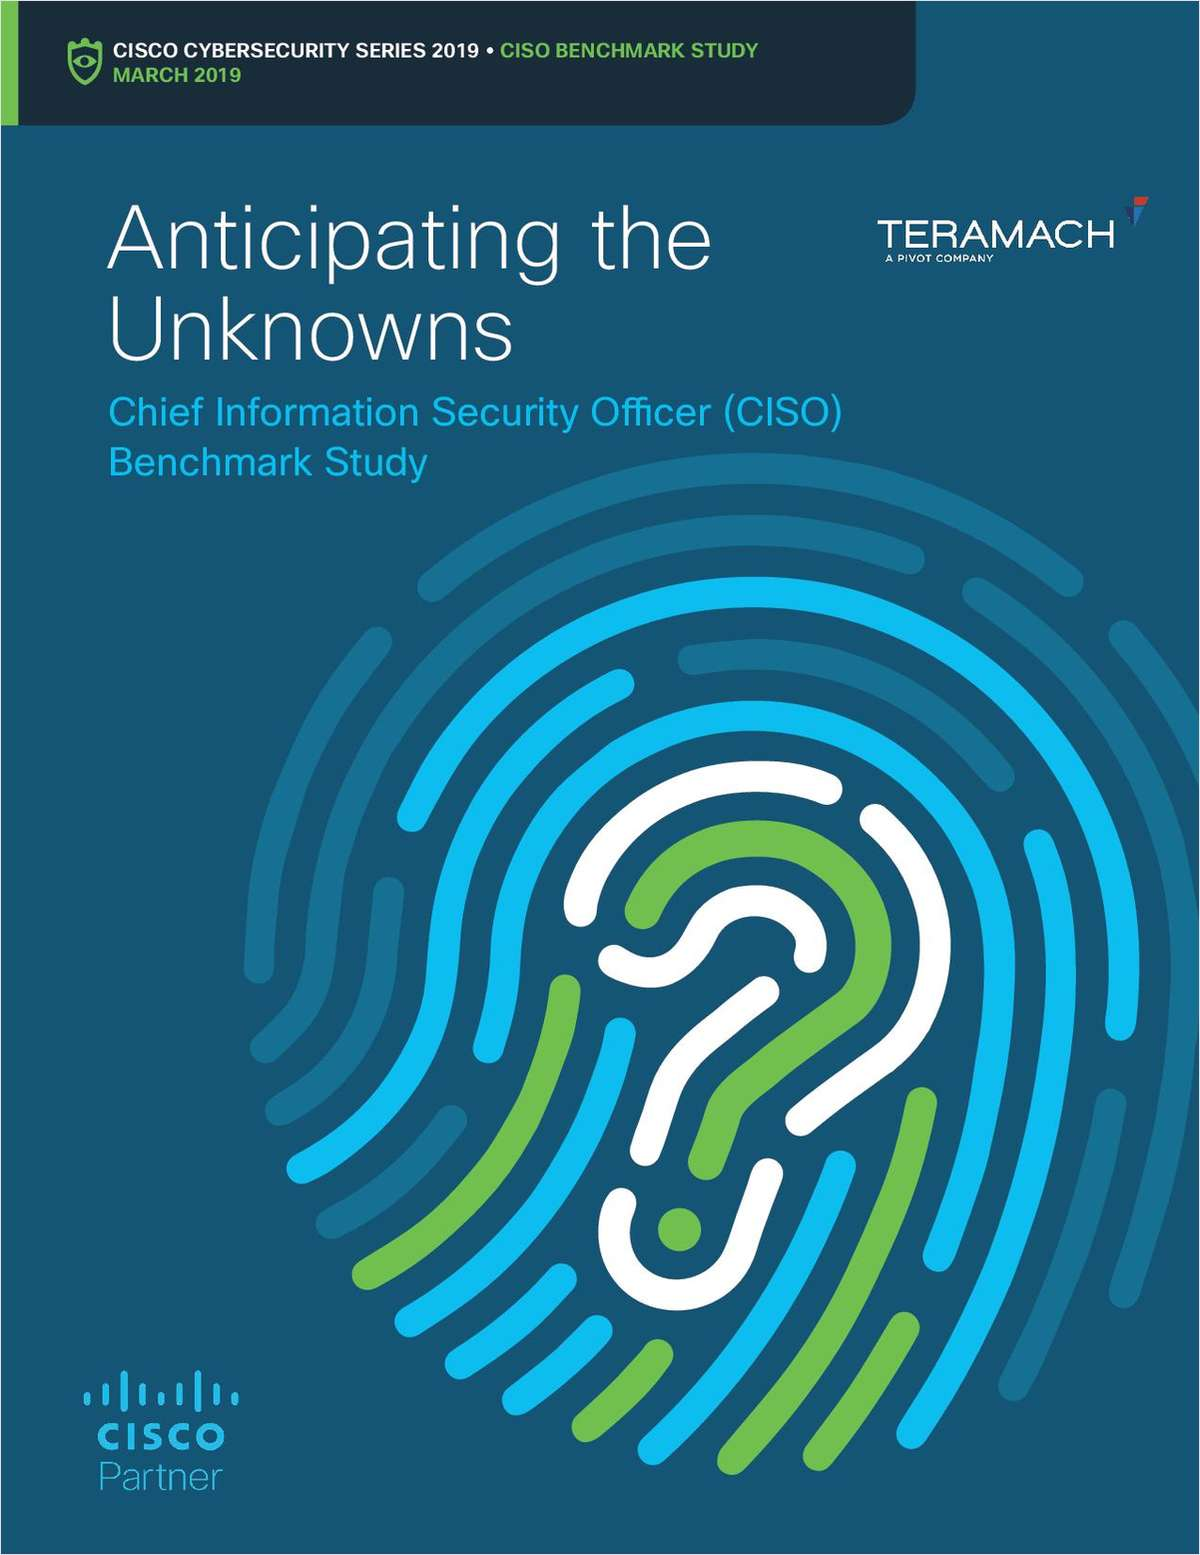 Anticipating the Unknowns: Chief Information Security Officer (CISO) Benchmark Study